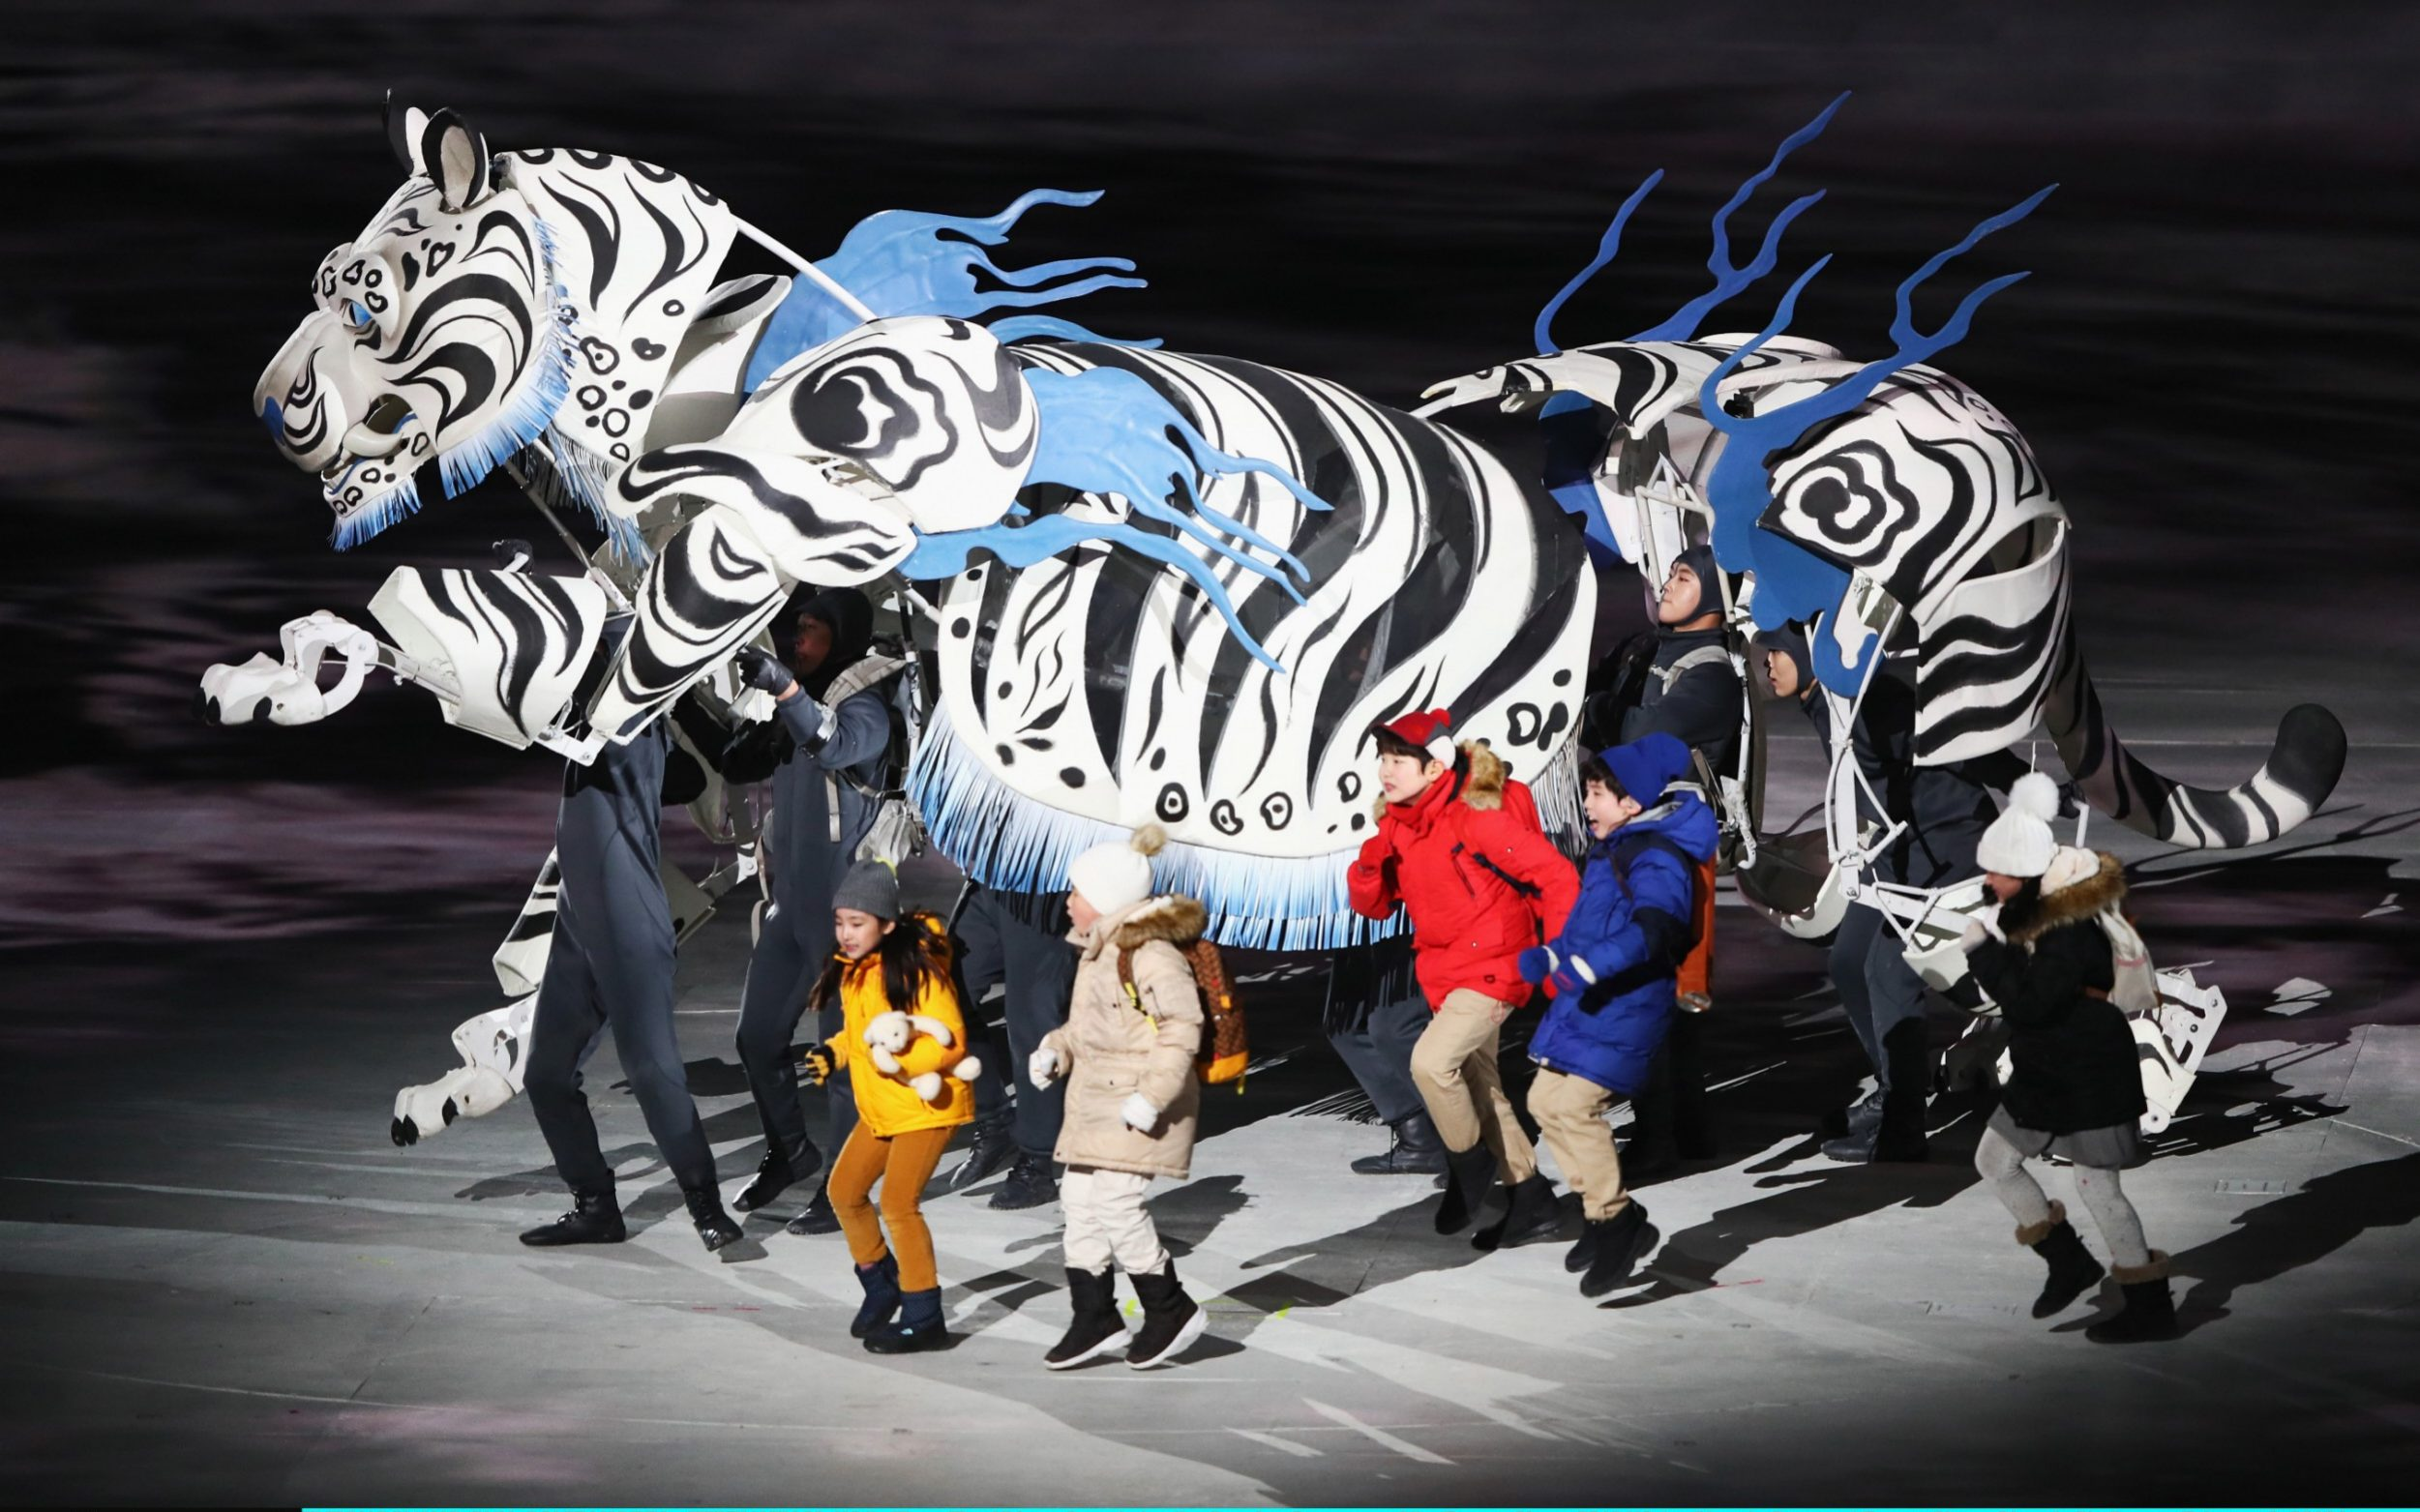 White Tiger & Five Kids perform during the Opening Ceremony of the PyeongChang 2018 Winter Olympic Games